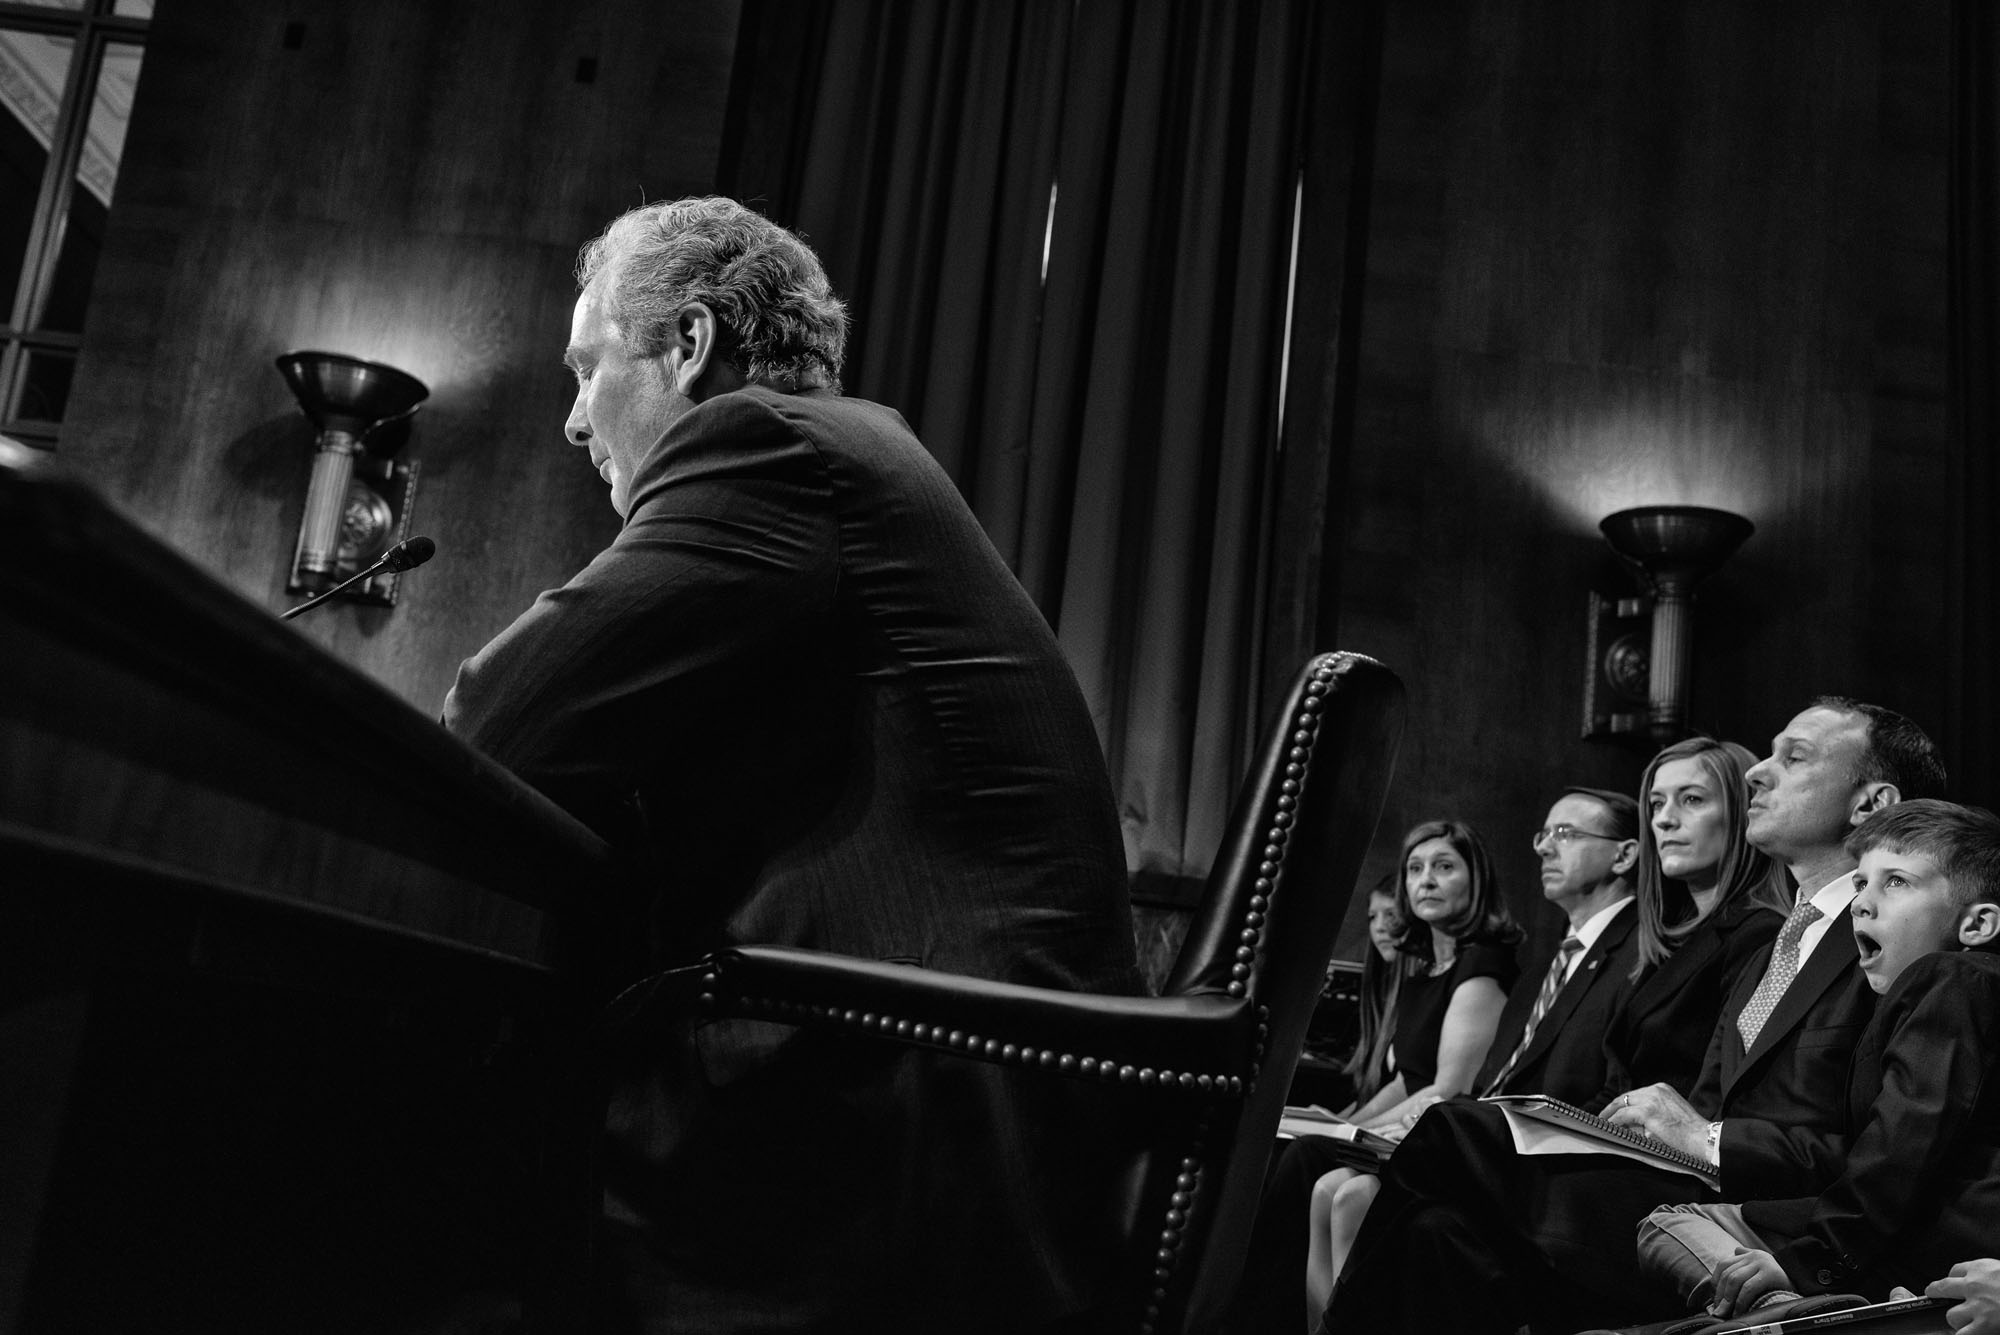 Senator Chris Van Hollen introduces Rod Rosenstein, nominee for deputy attorney general, during a Senate Judiciary Committee confirmation hearing on March 7, 2017.